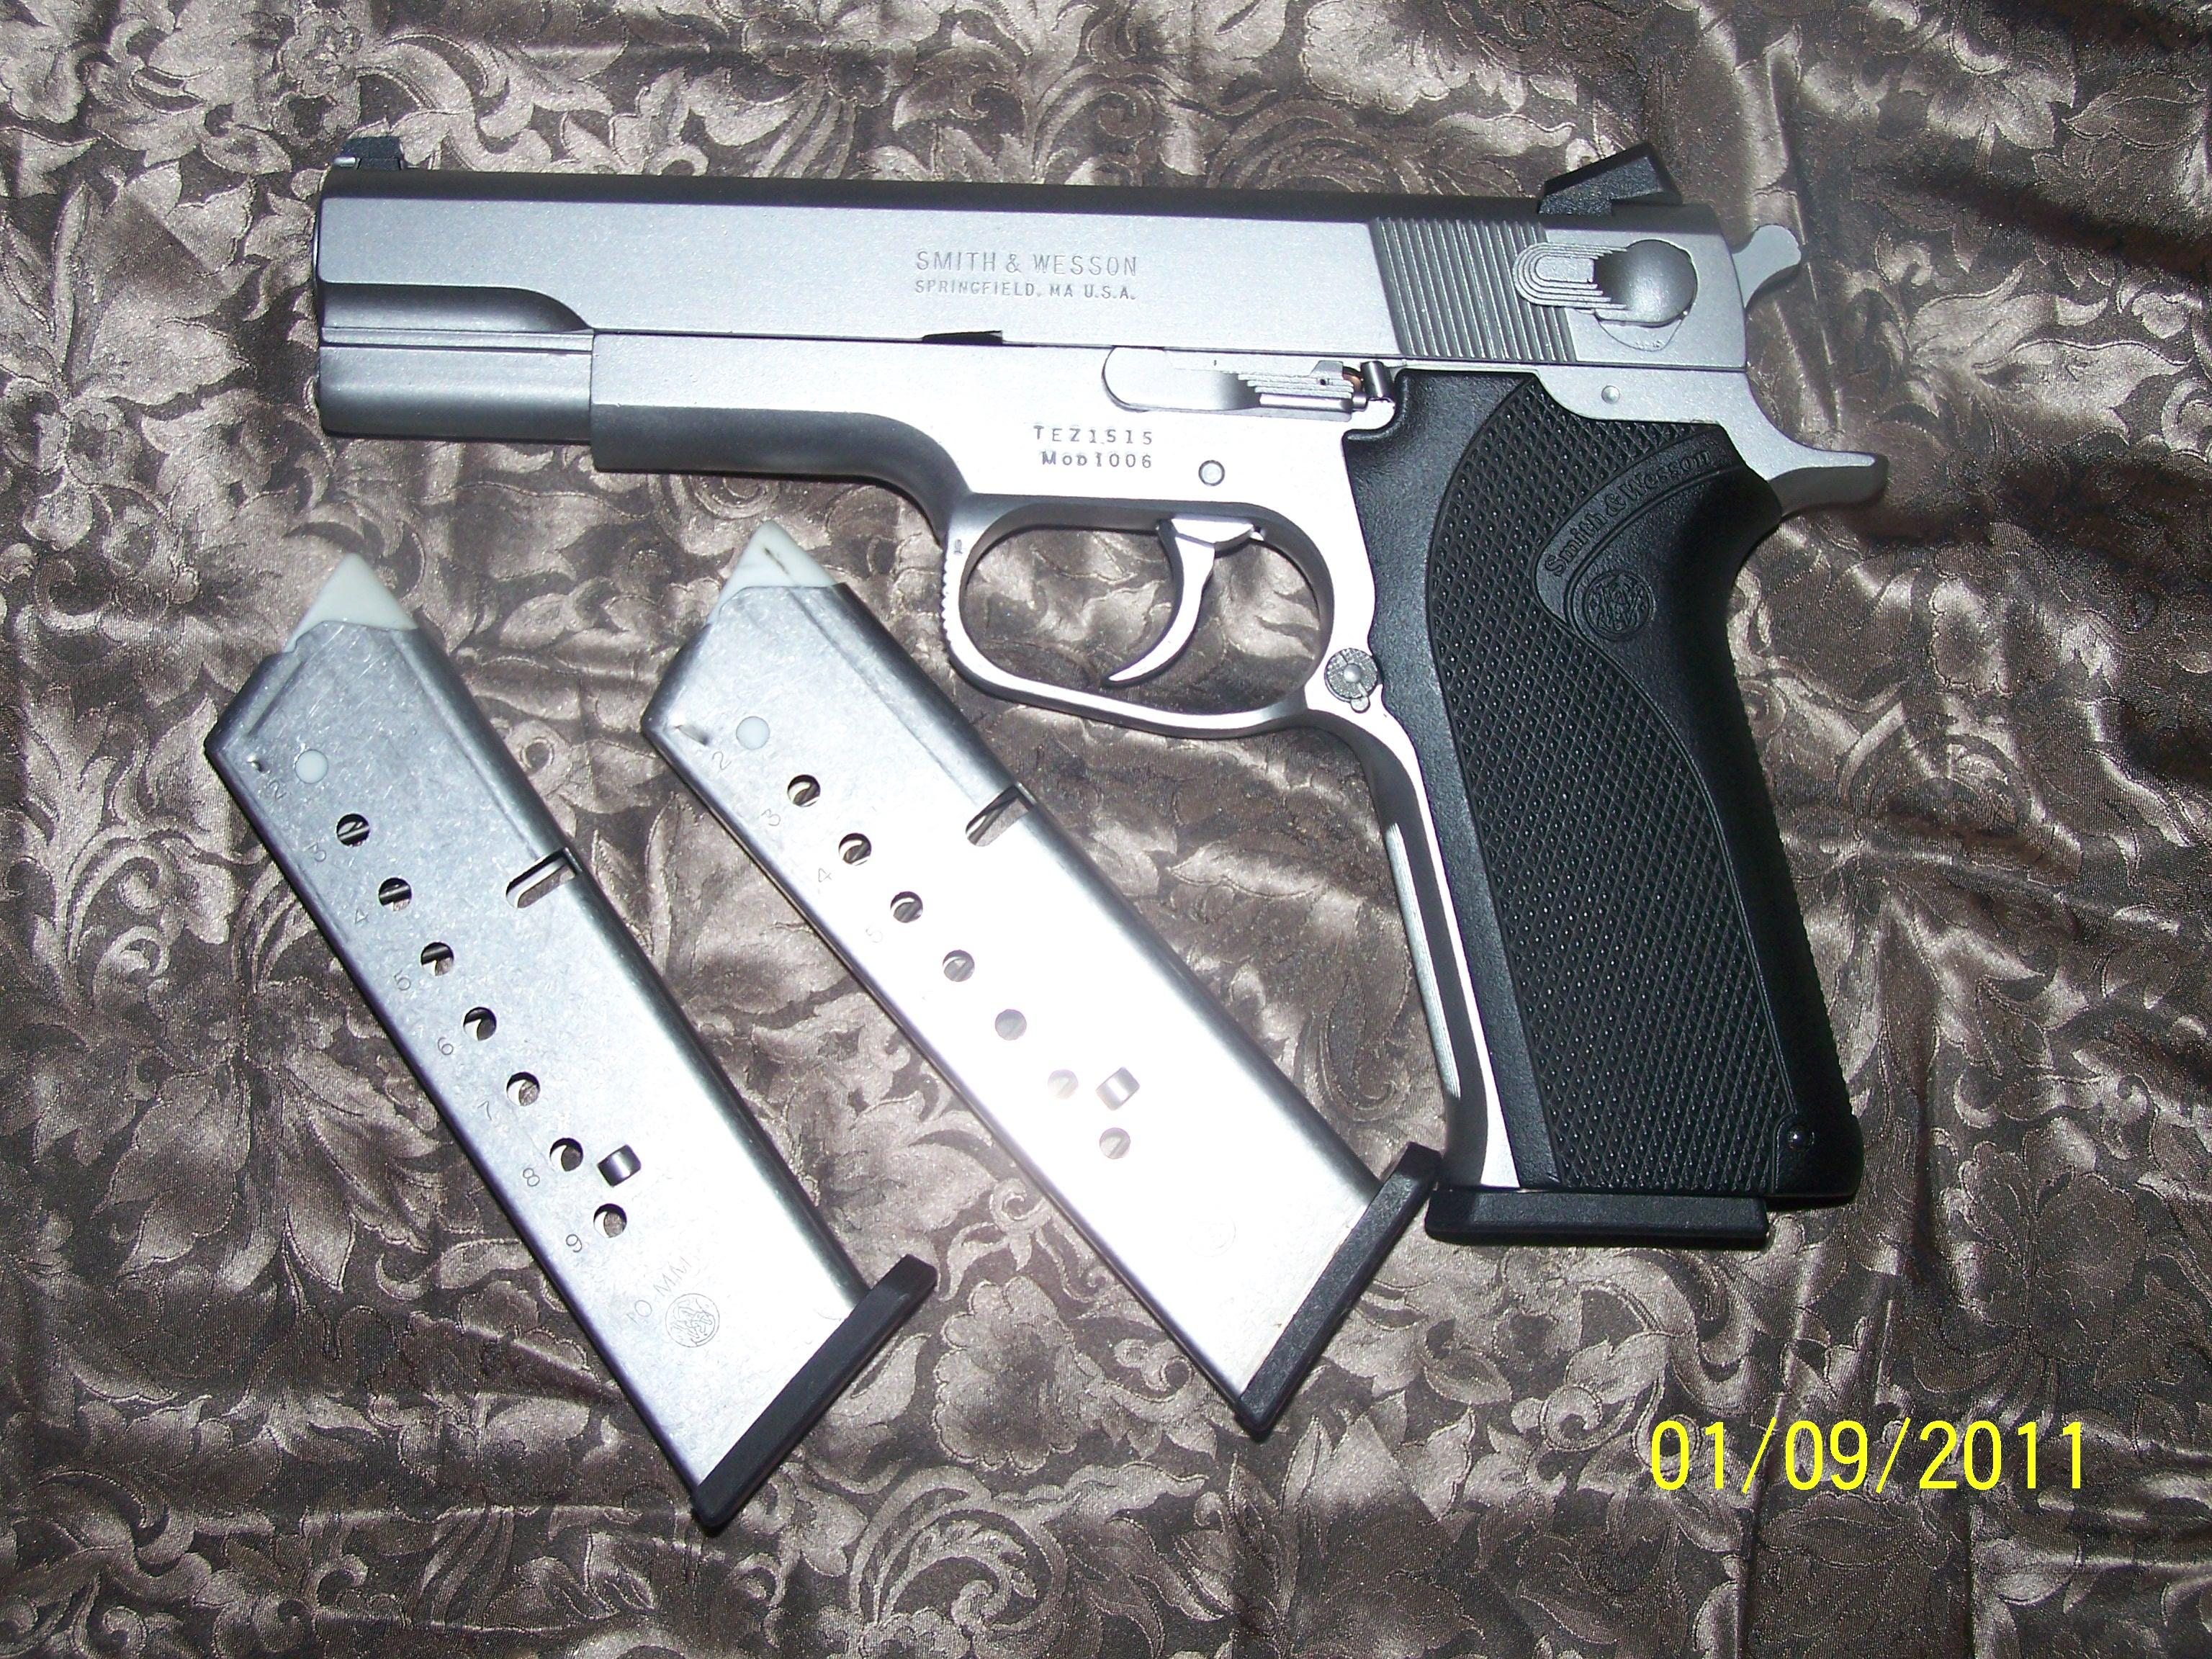 Smith and Wesson 1006  Guns > Pistols > Smith & Wesson Pistols - Autos > Steel Frame